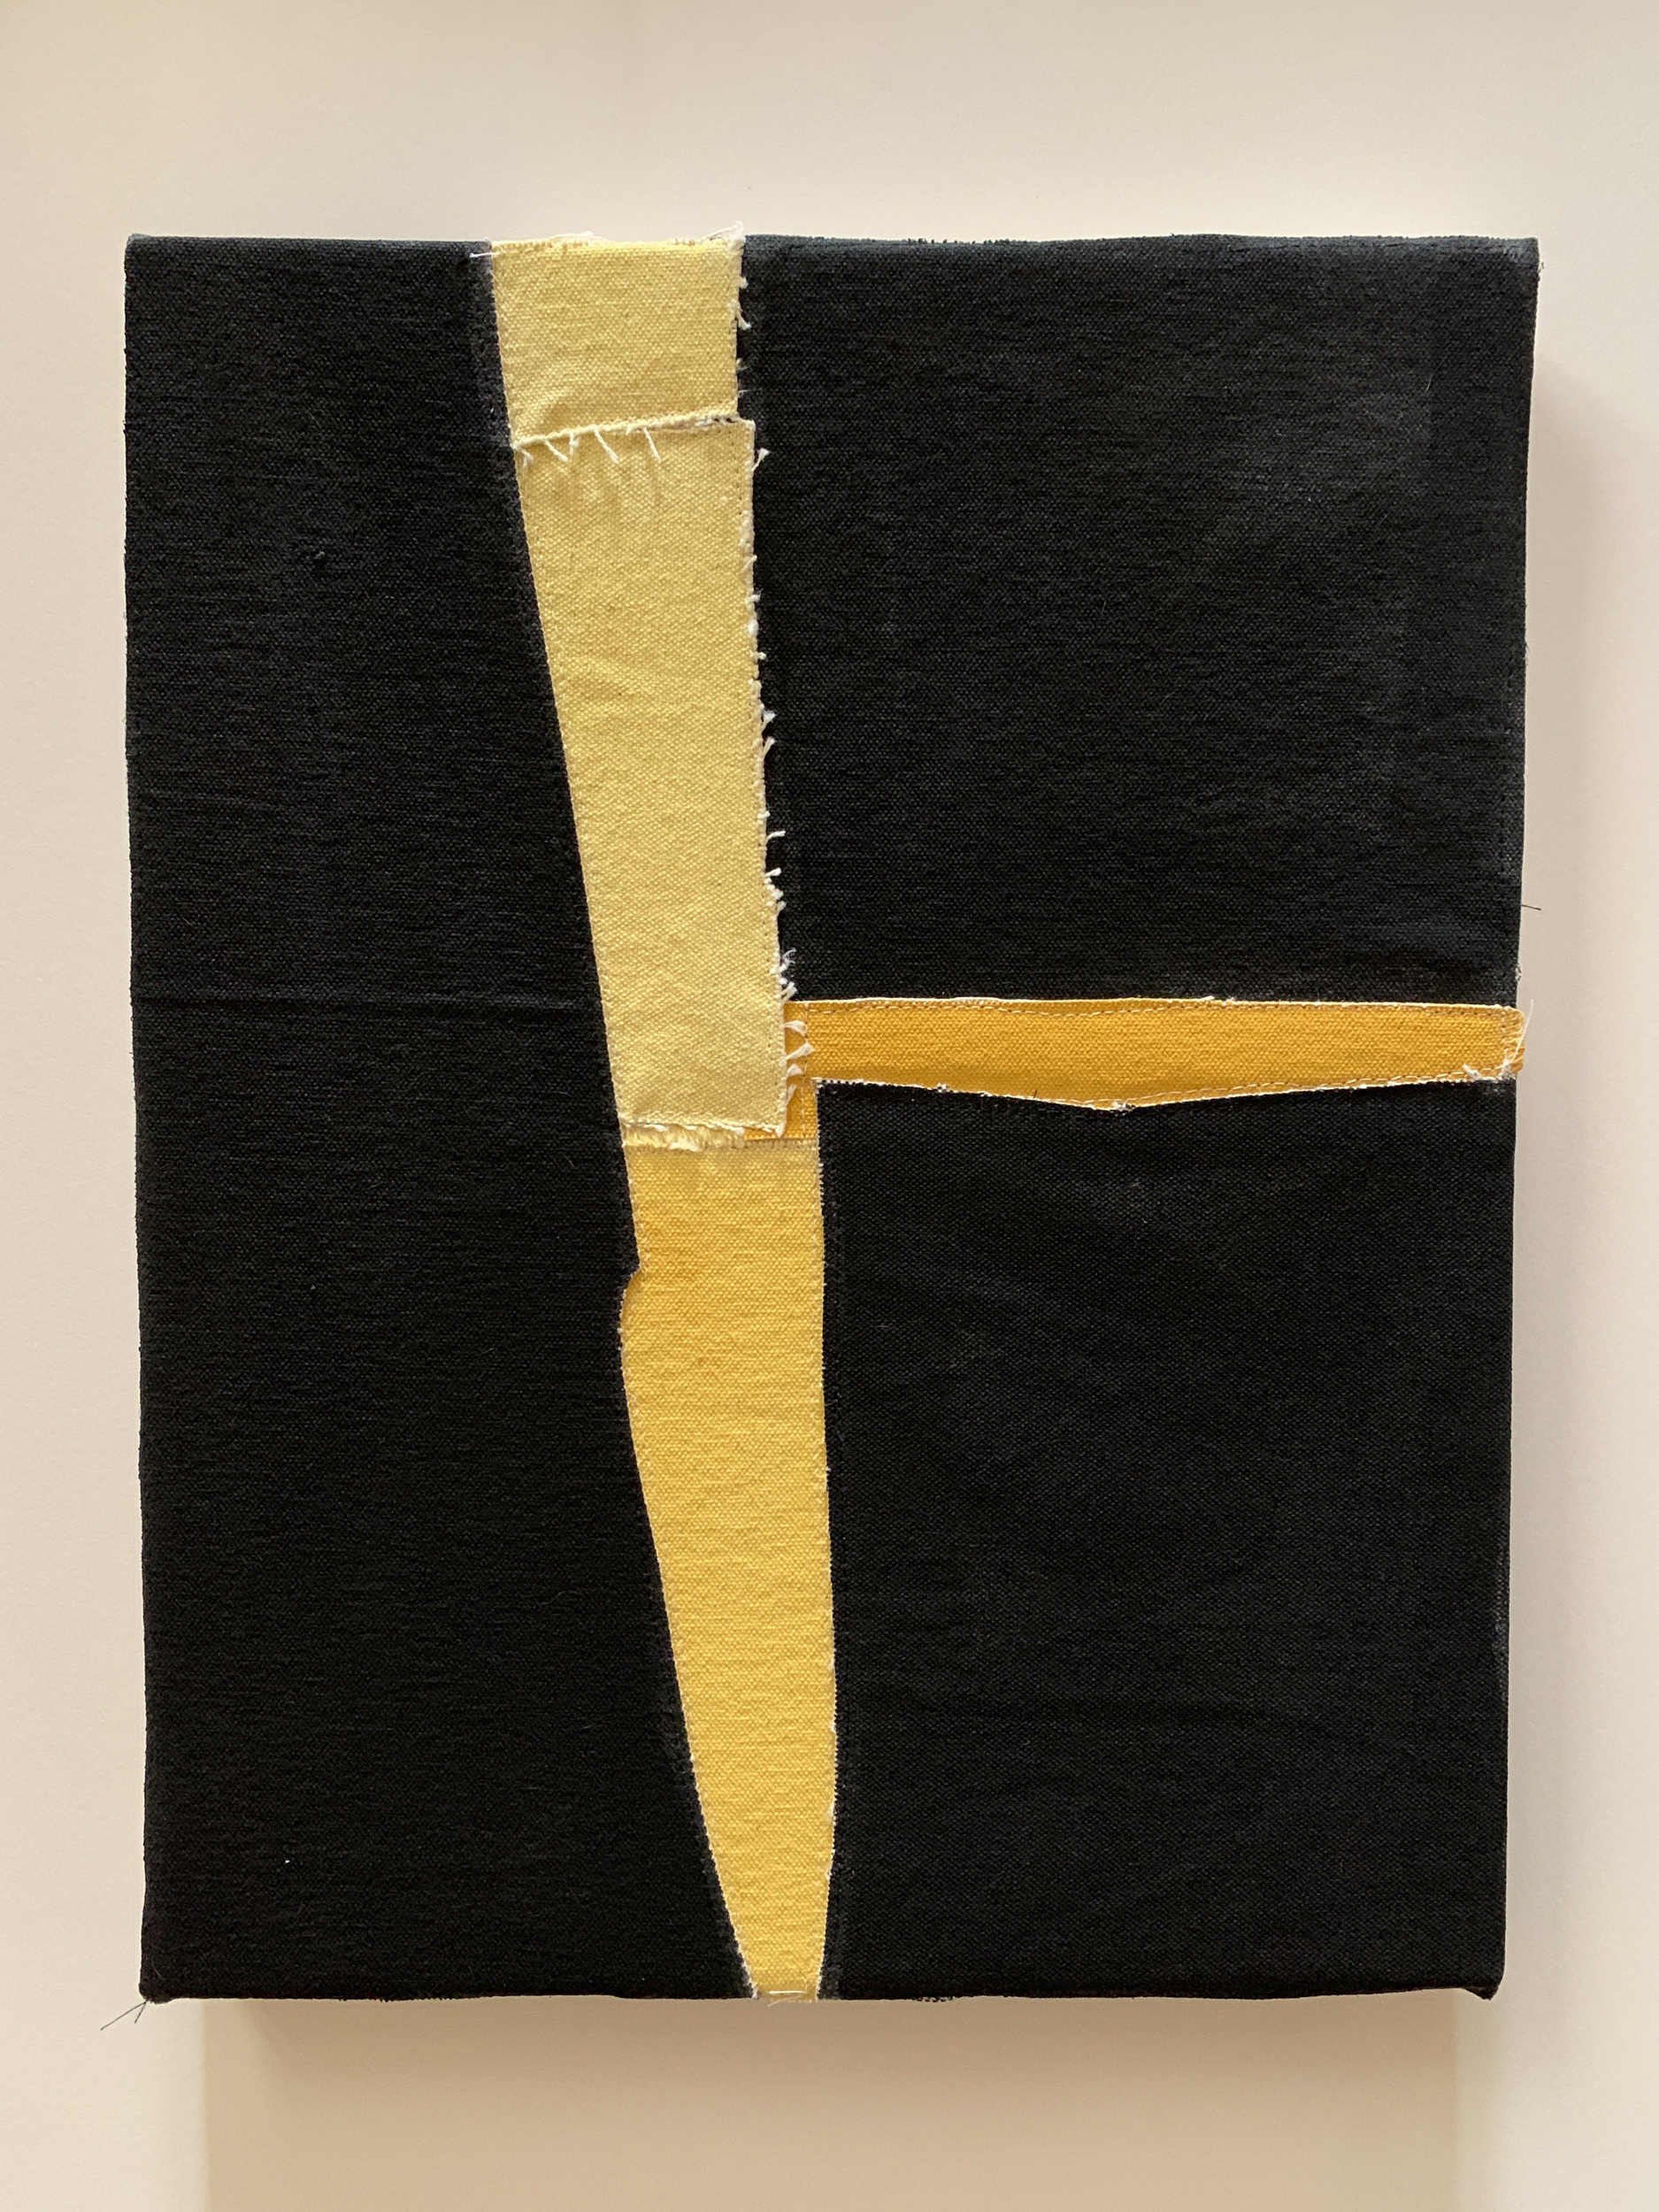 Jonathan Parker SC #97 , 2019 Acrylic on canvas, sewn 14 x 11 inches